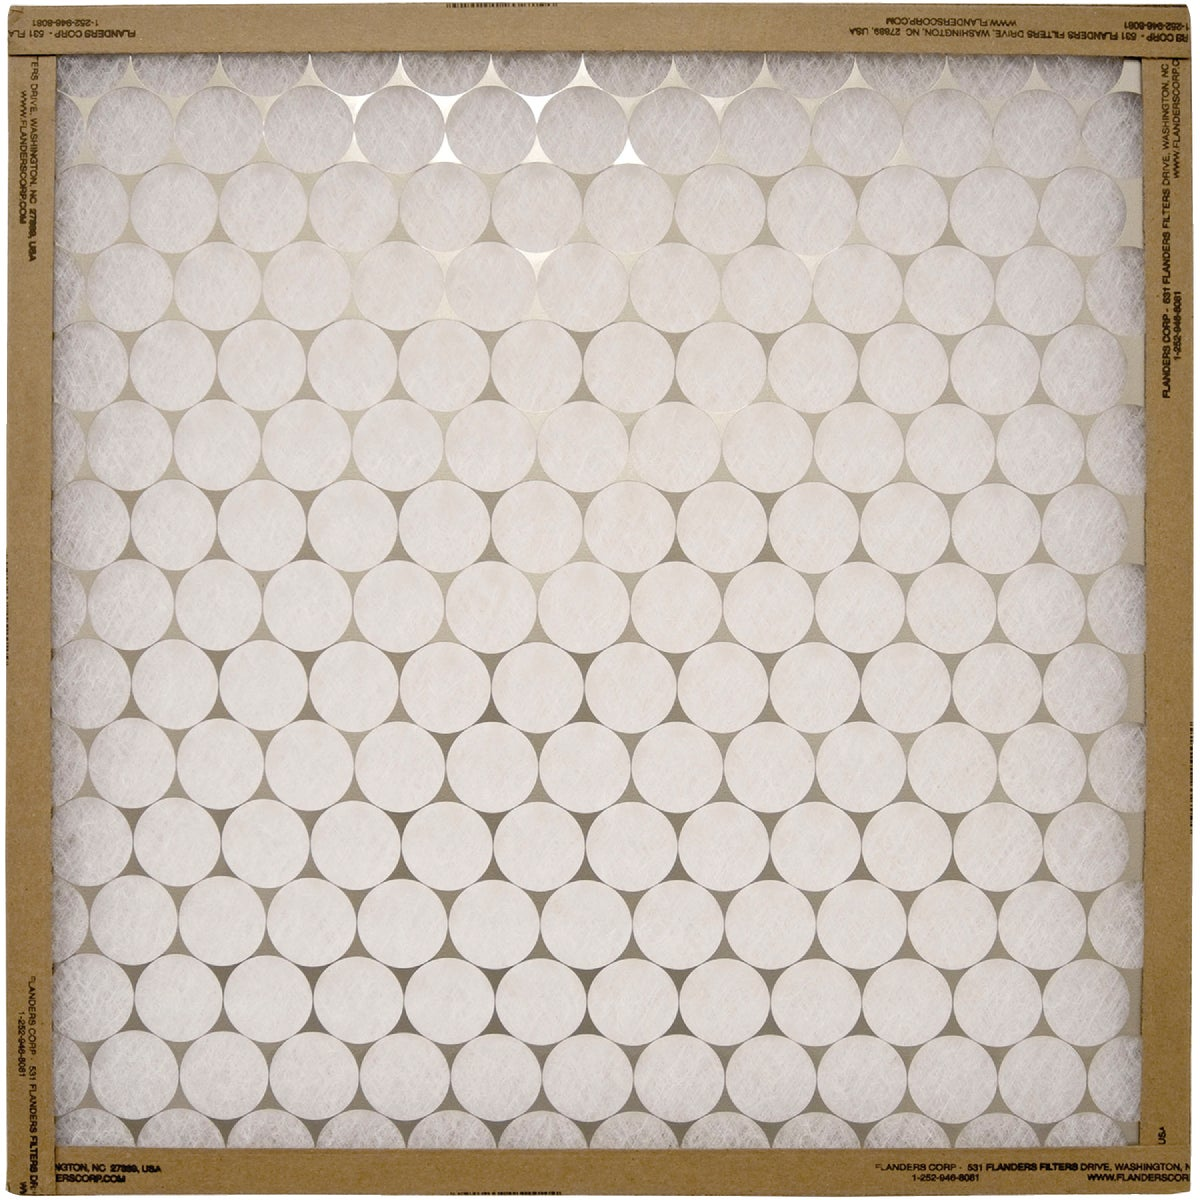 15X20 FURNACE FILTER - 10255.011520 by Flanders Corp